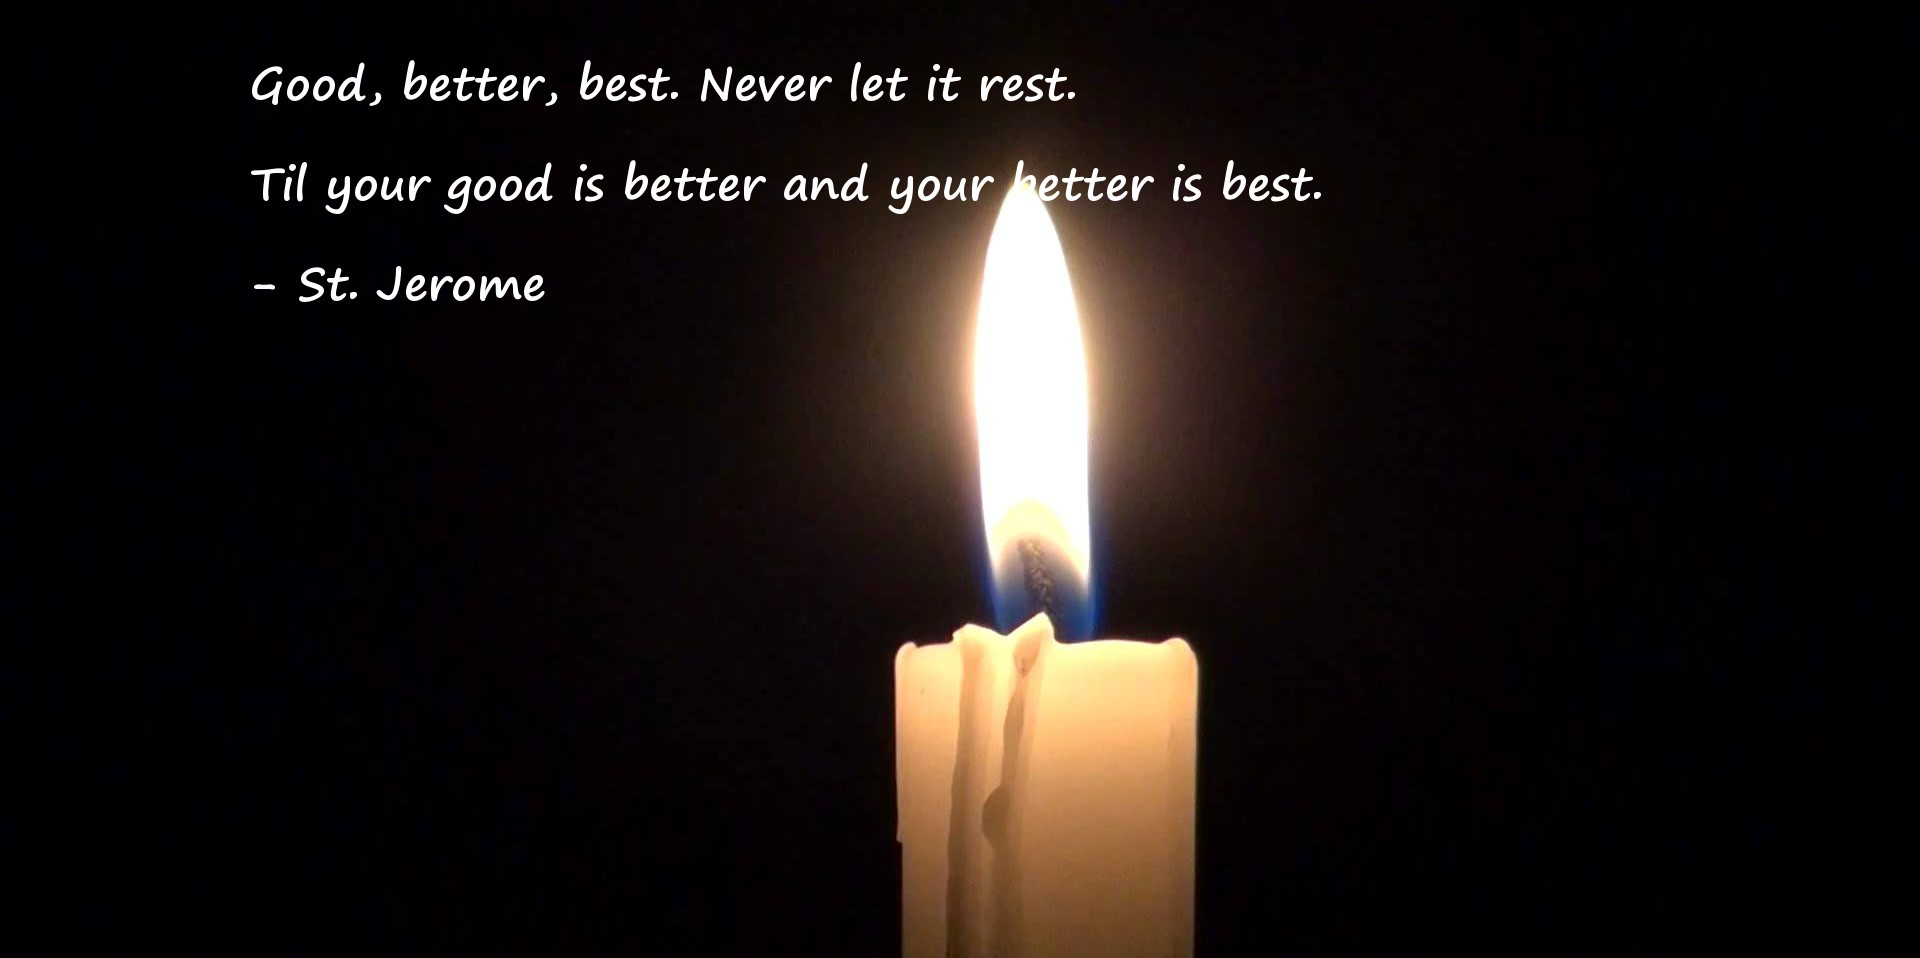 Good better best. Never let it rest.